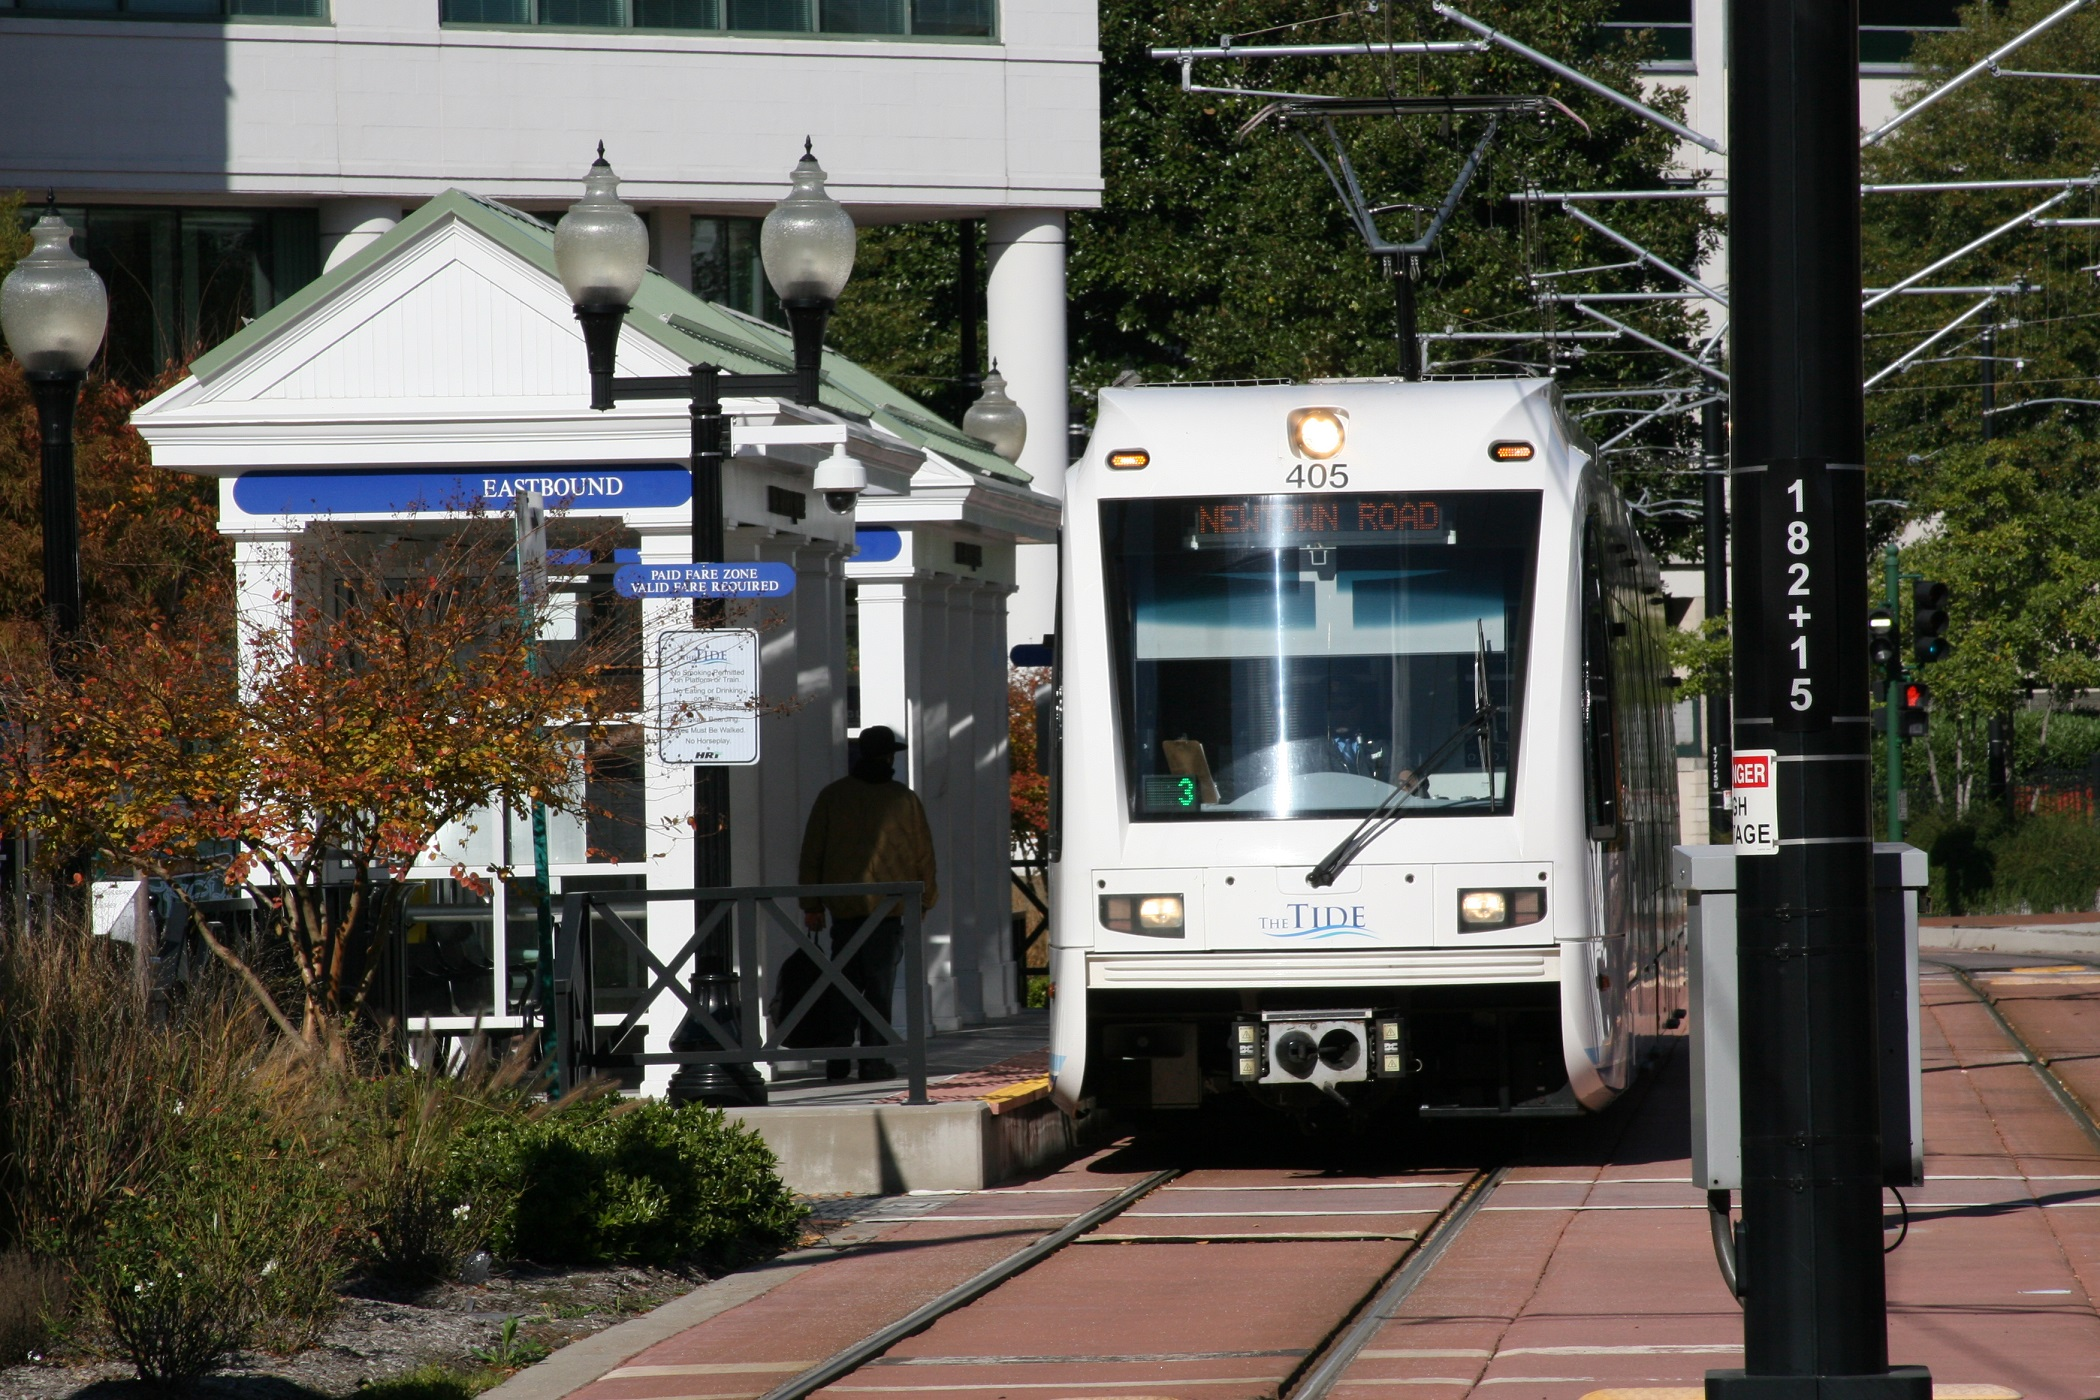 The Tide Light Rail Transit System